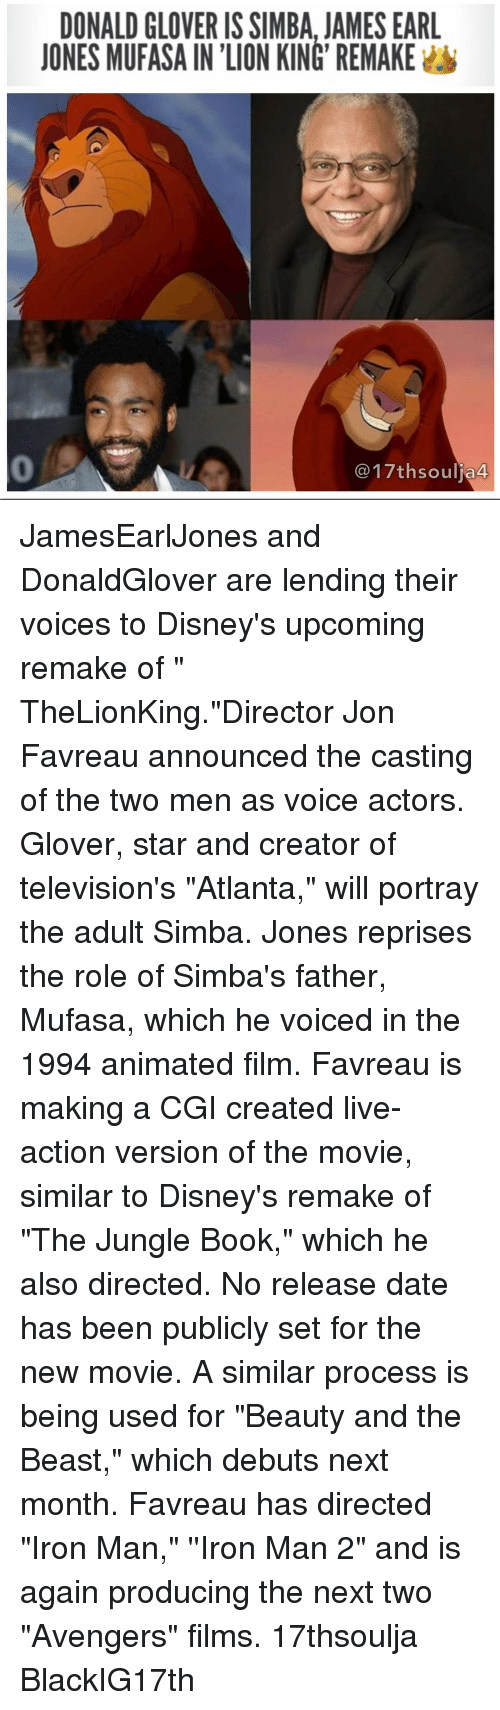 "Iron Man, Memes, and Mufasa: DONALD GLOVERIS SIMBA, JAMES EARL  JONES MUFASAINION KING REMAKE  a 44 JamesEarlJones and DonaldGlover are lending their voices to Disney's upcoming remake of "" TheLionKing.""Director Jon Favreau announced the casting of the two men as voice actors. Glover, star and creator of television's ""Atlanta,"" will portray the adult Simba. Jones reprises the role of Simba's father, Mufasa, which he voiced in the 1994 animated film. Favreau is making a CGI created live-action version of the movie, similar to Disney's remake of ""The Jungle Book,"" which he also directed. No release date has been publicly set for the new movie. A similar process is being used for ""Beauty and the Beast,"" which debuts next month. Favreau has directed ""Iron Man,"" ''Iron Man 2"" and is again producing the next two ""Avengers"" films. 17thsoulja BlackIG17th"